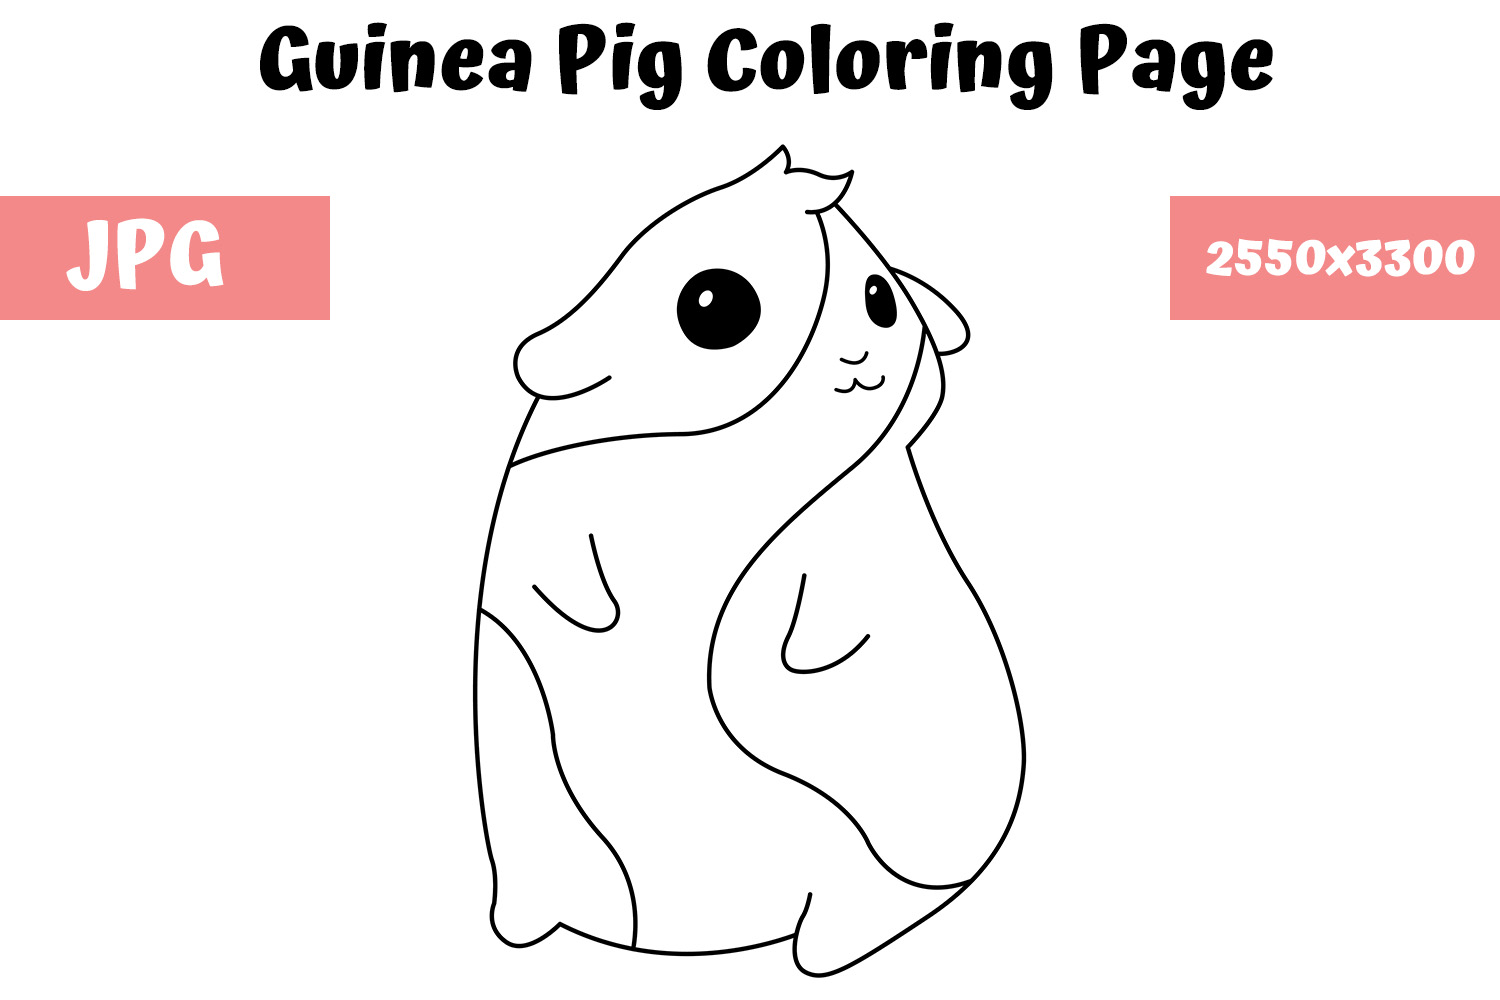 Guinea Pig coloring page - Animals Town - animals color sheet ... | 1000x1500